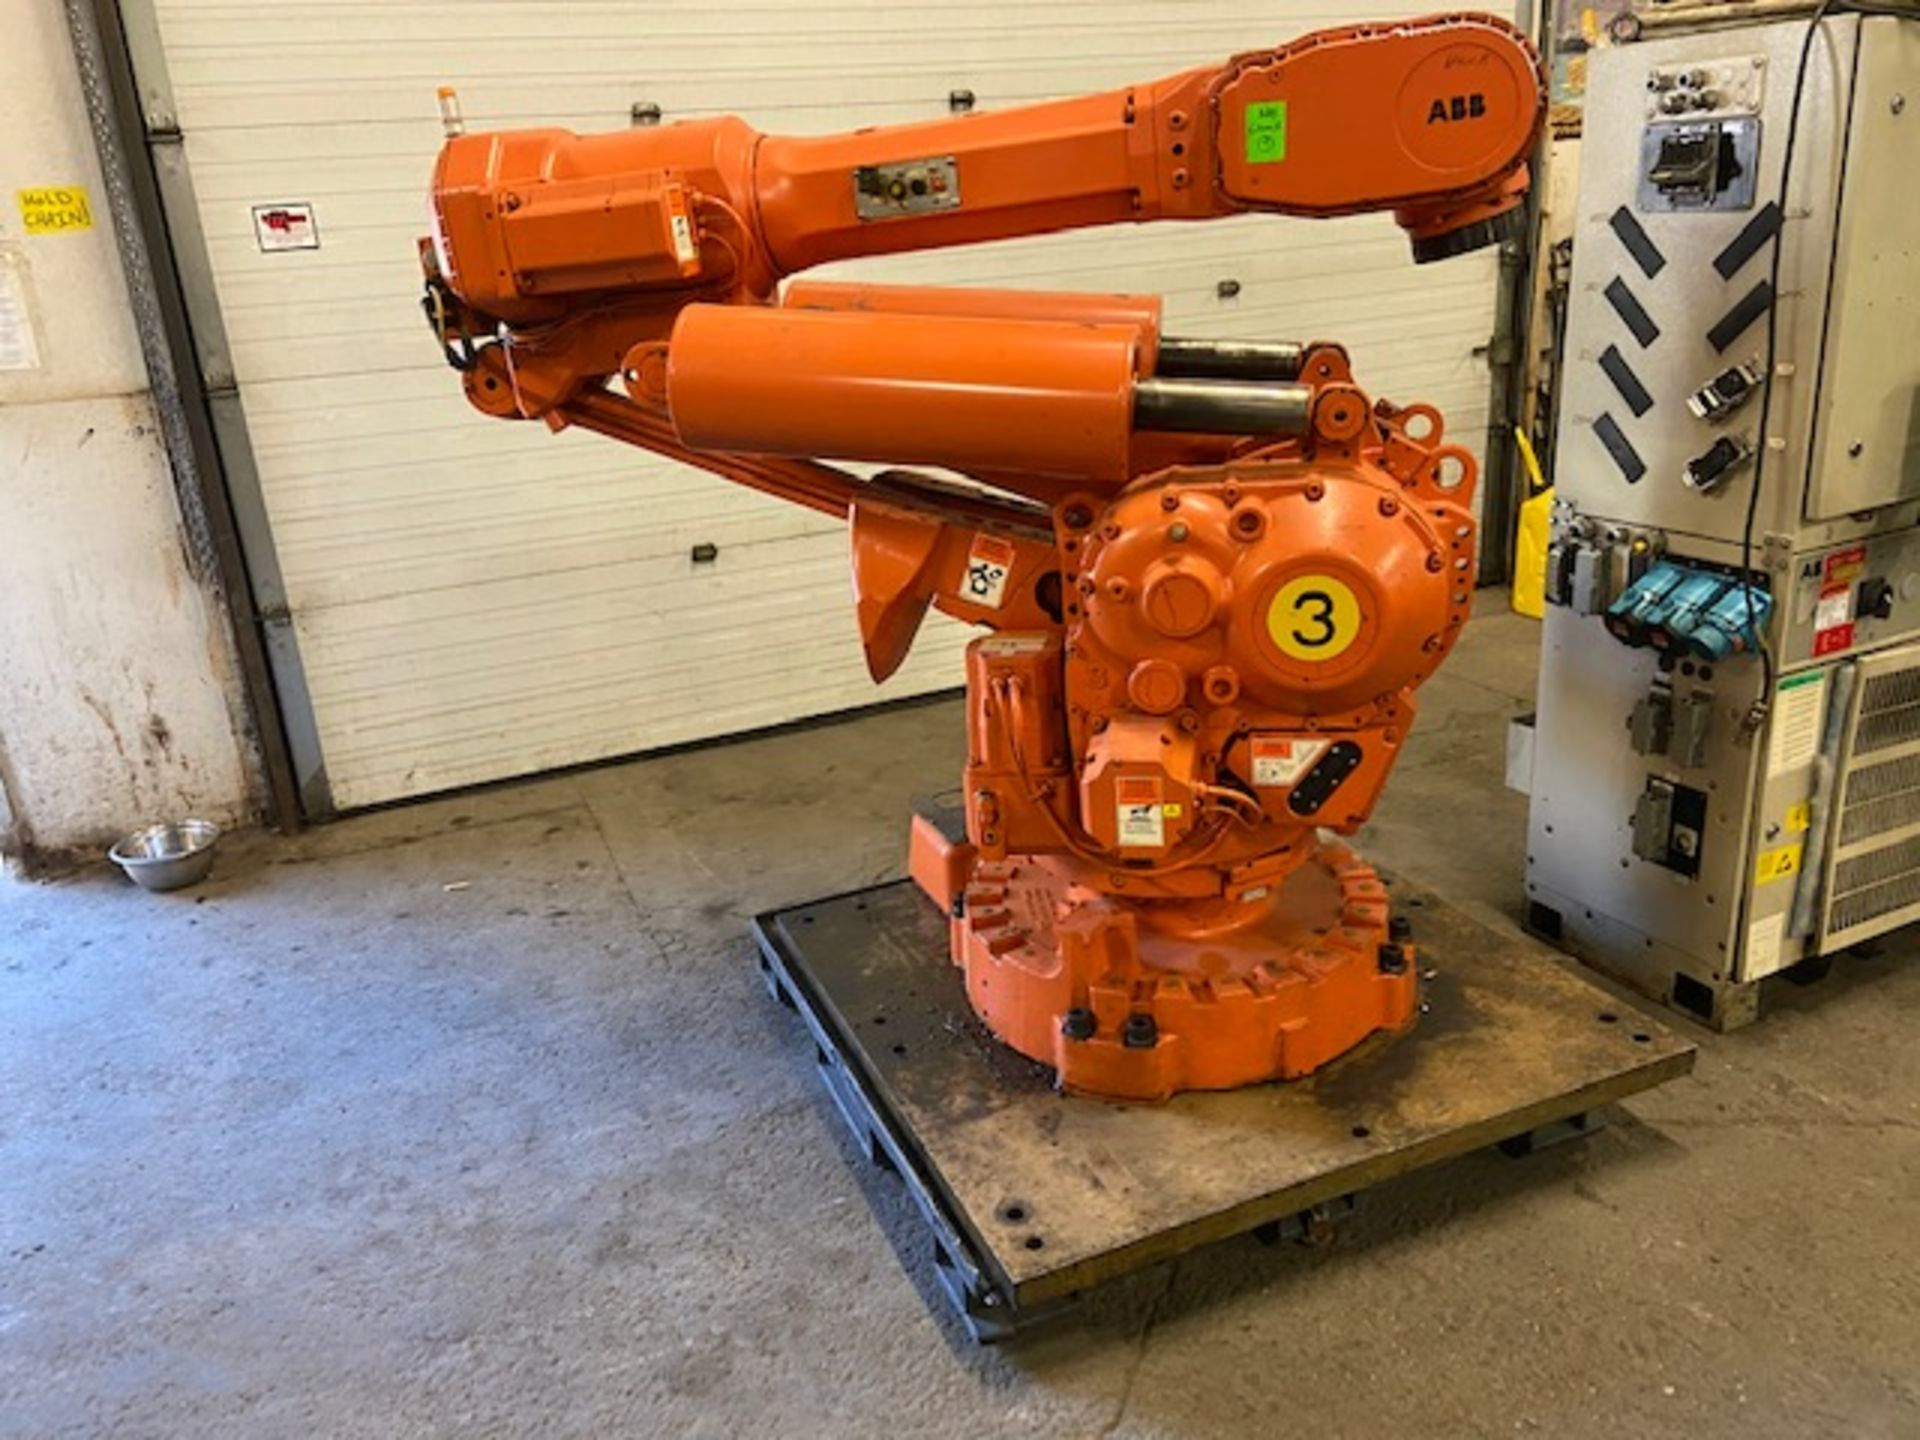 2008 ABB IRB 6400R Robotic Material Handler Package w/ Controller and end of arm tooling - Image 2 of 3